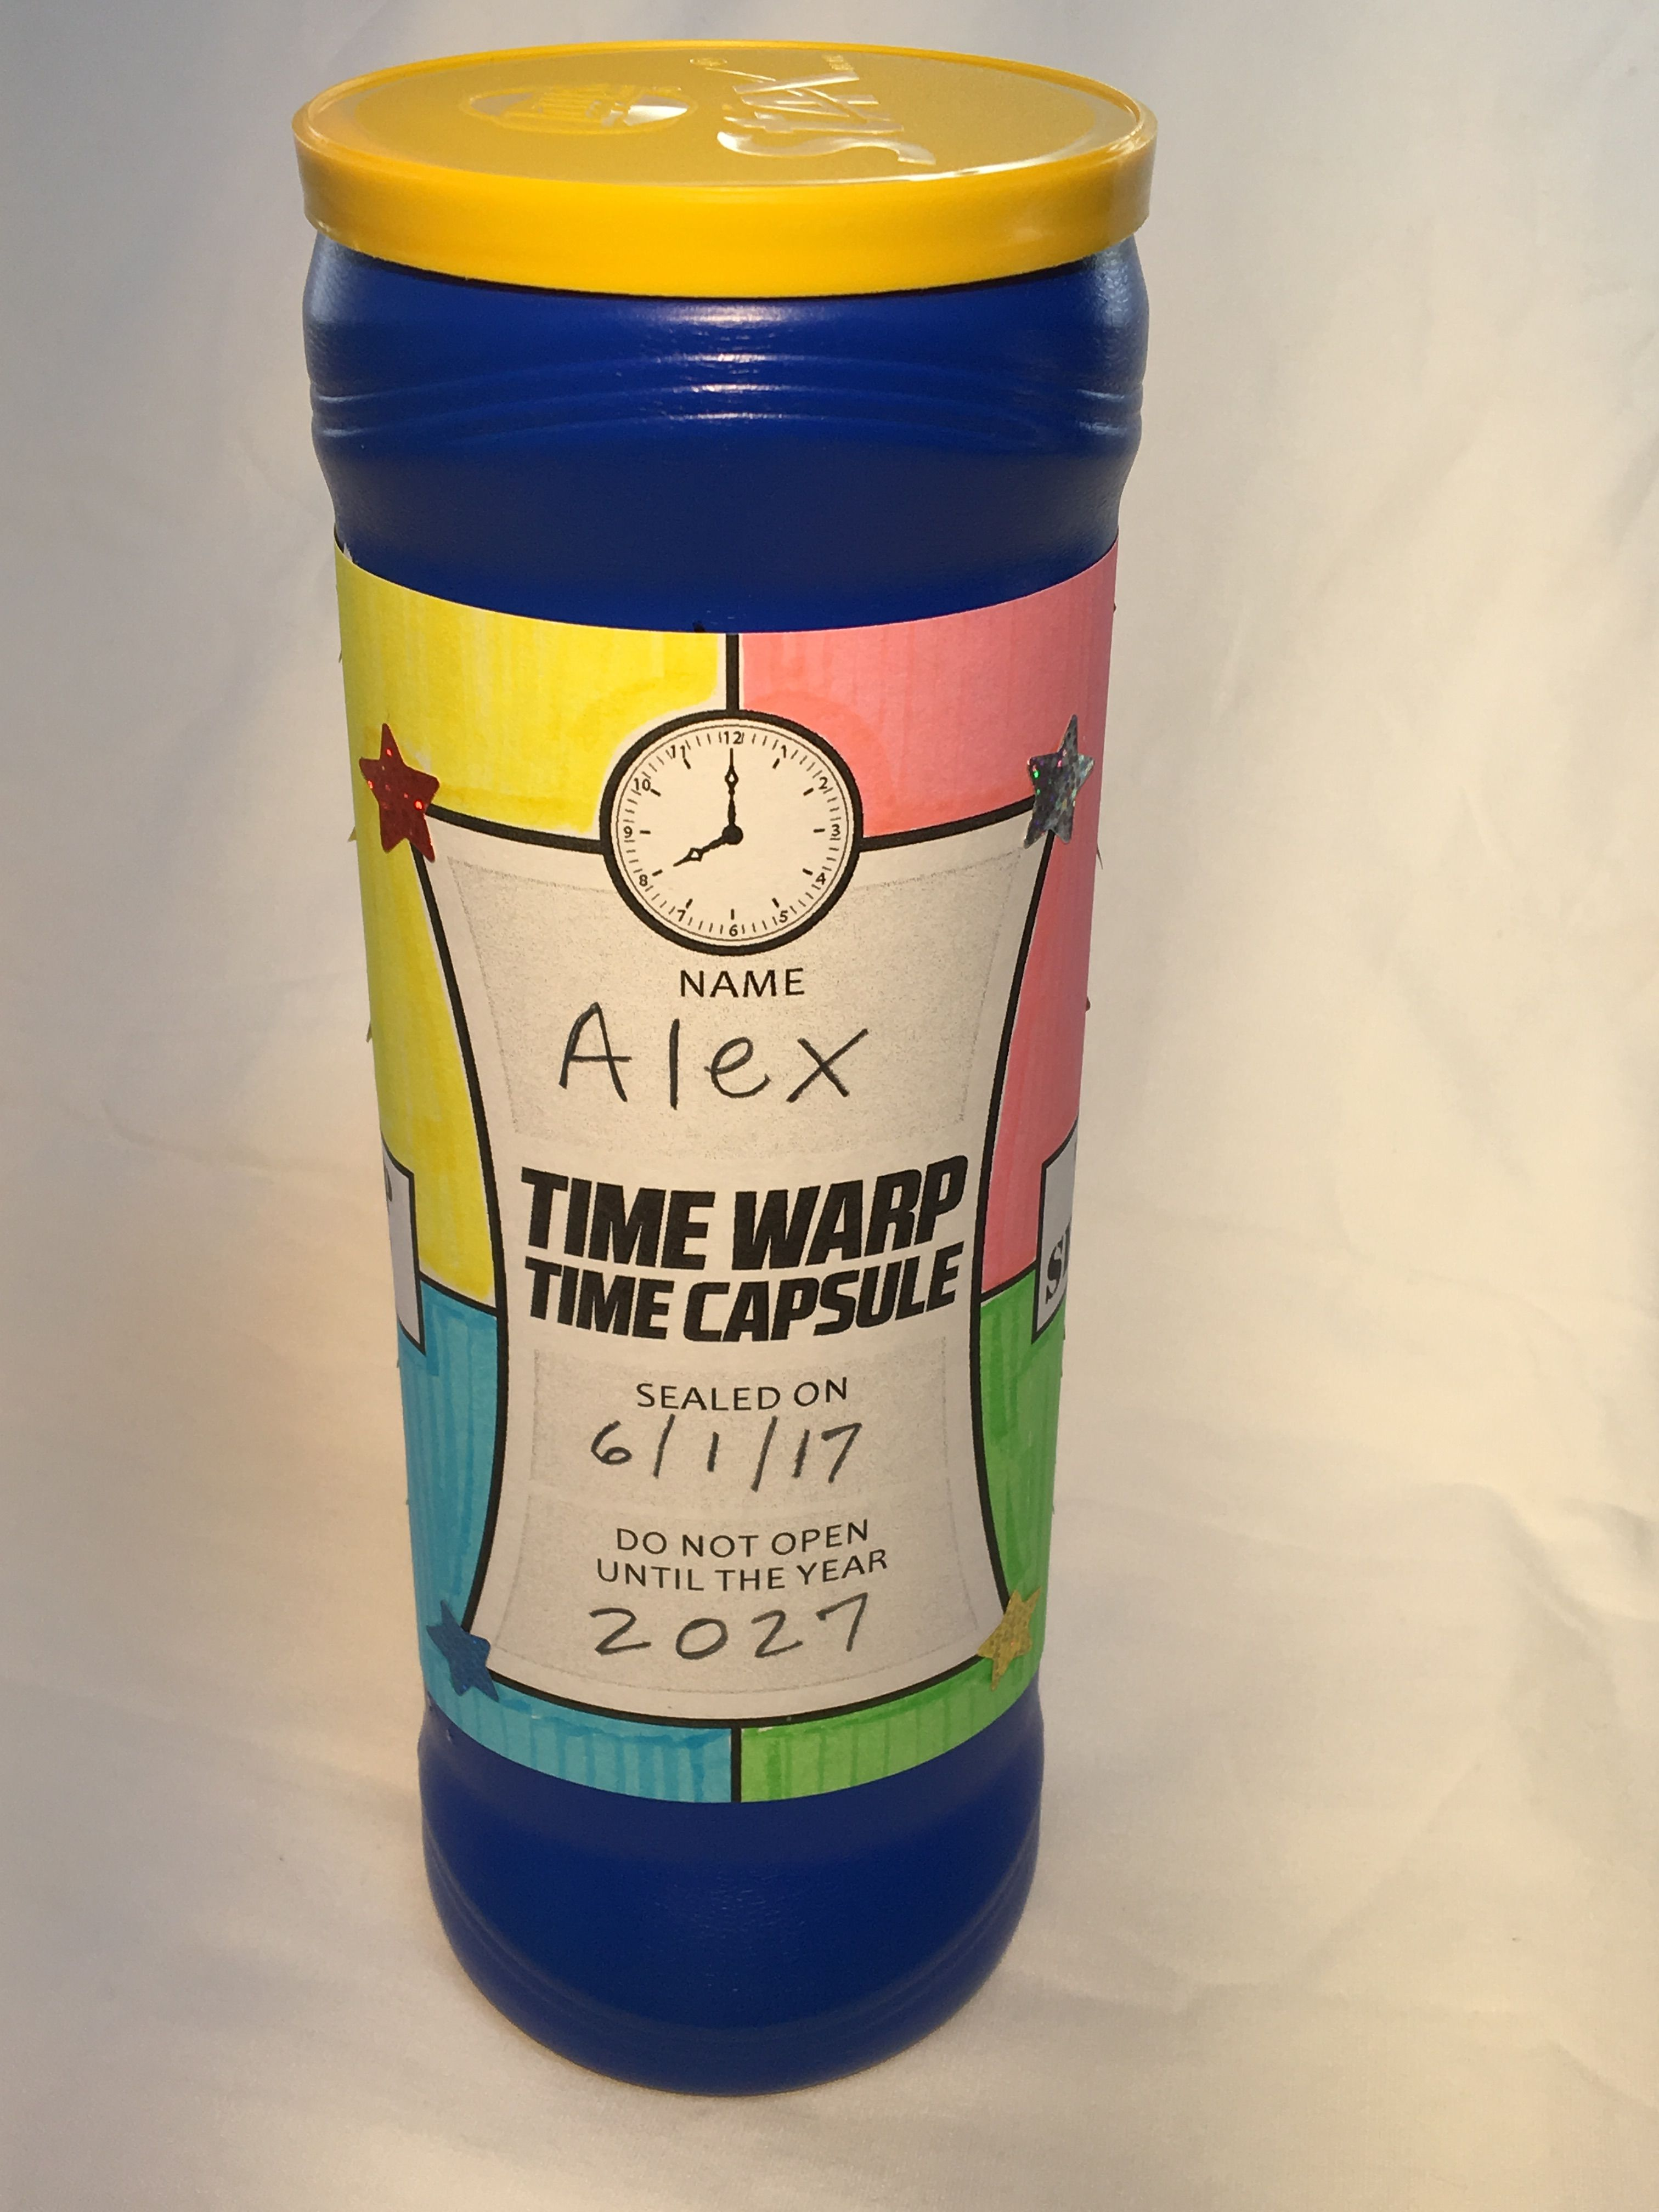 Time Capsule Definition Meaning: Time Warp Time Capsule -- Day 4 #VBScraft At #TimeLab